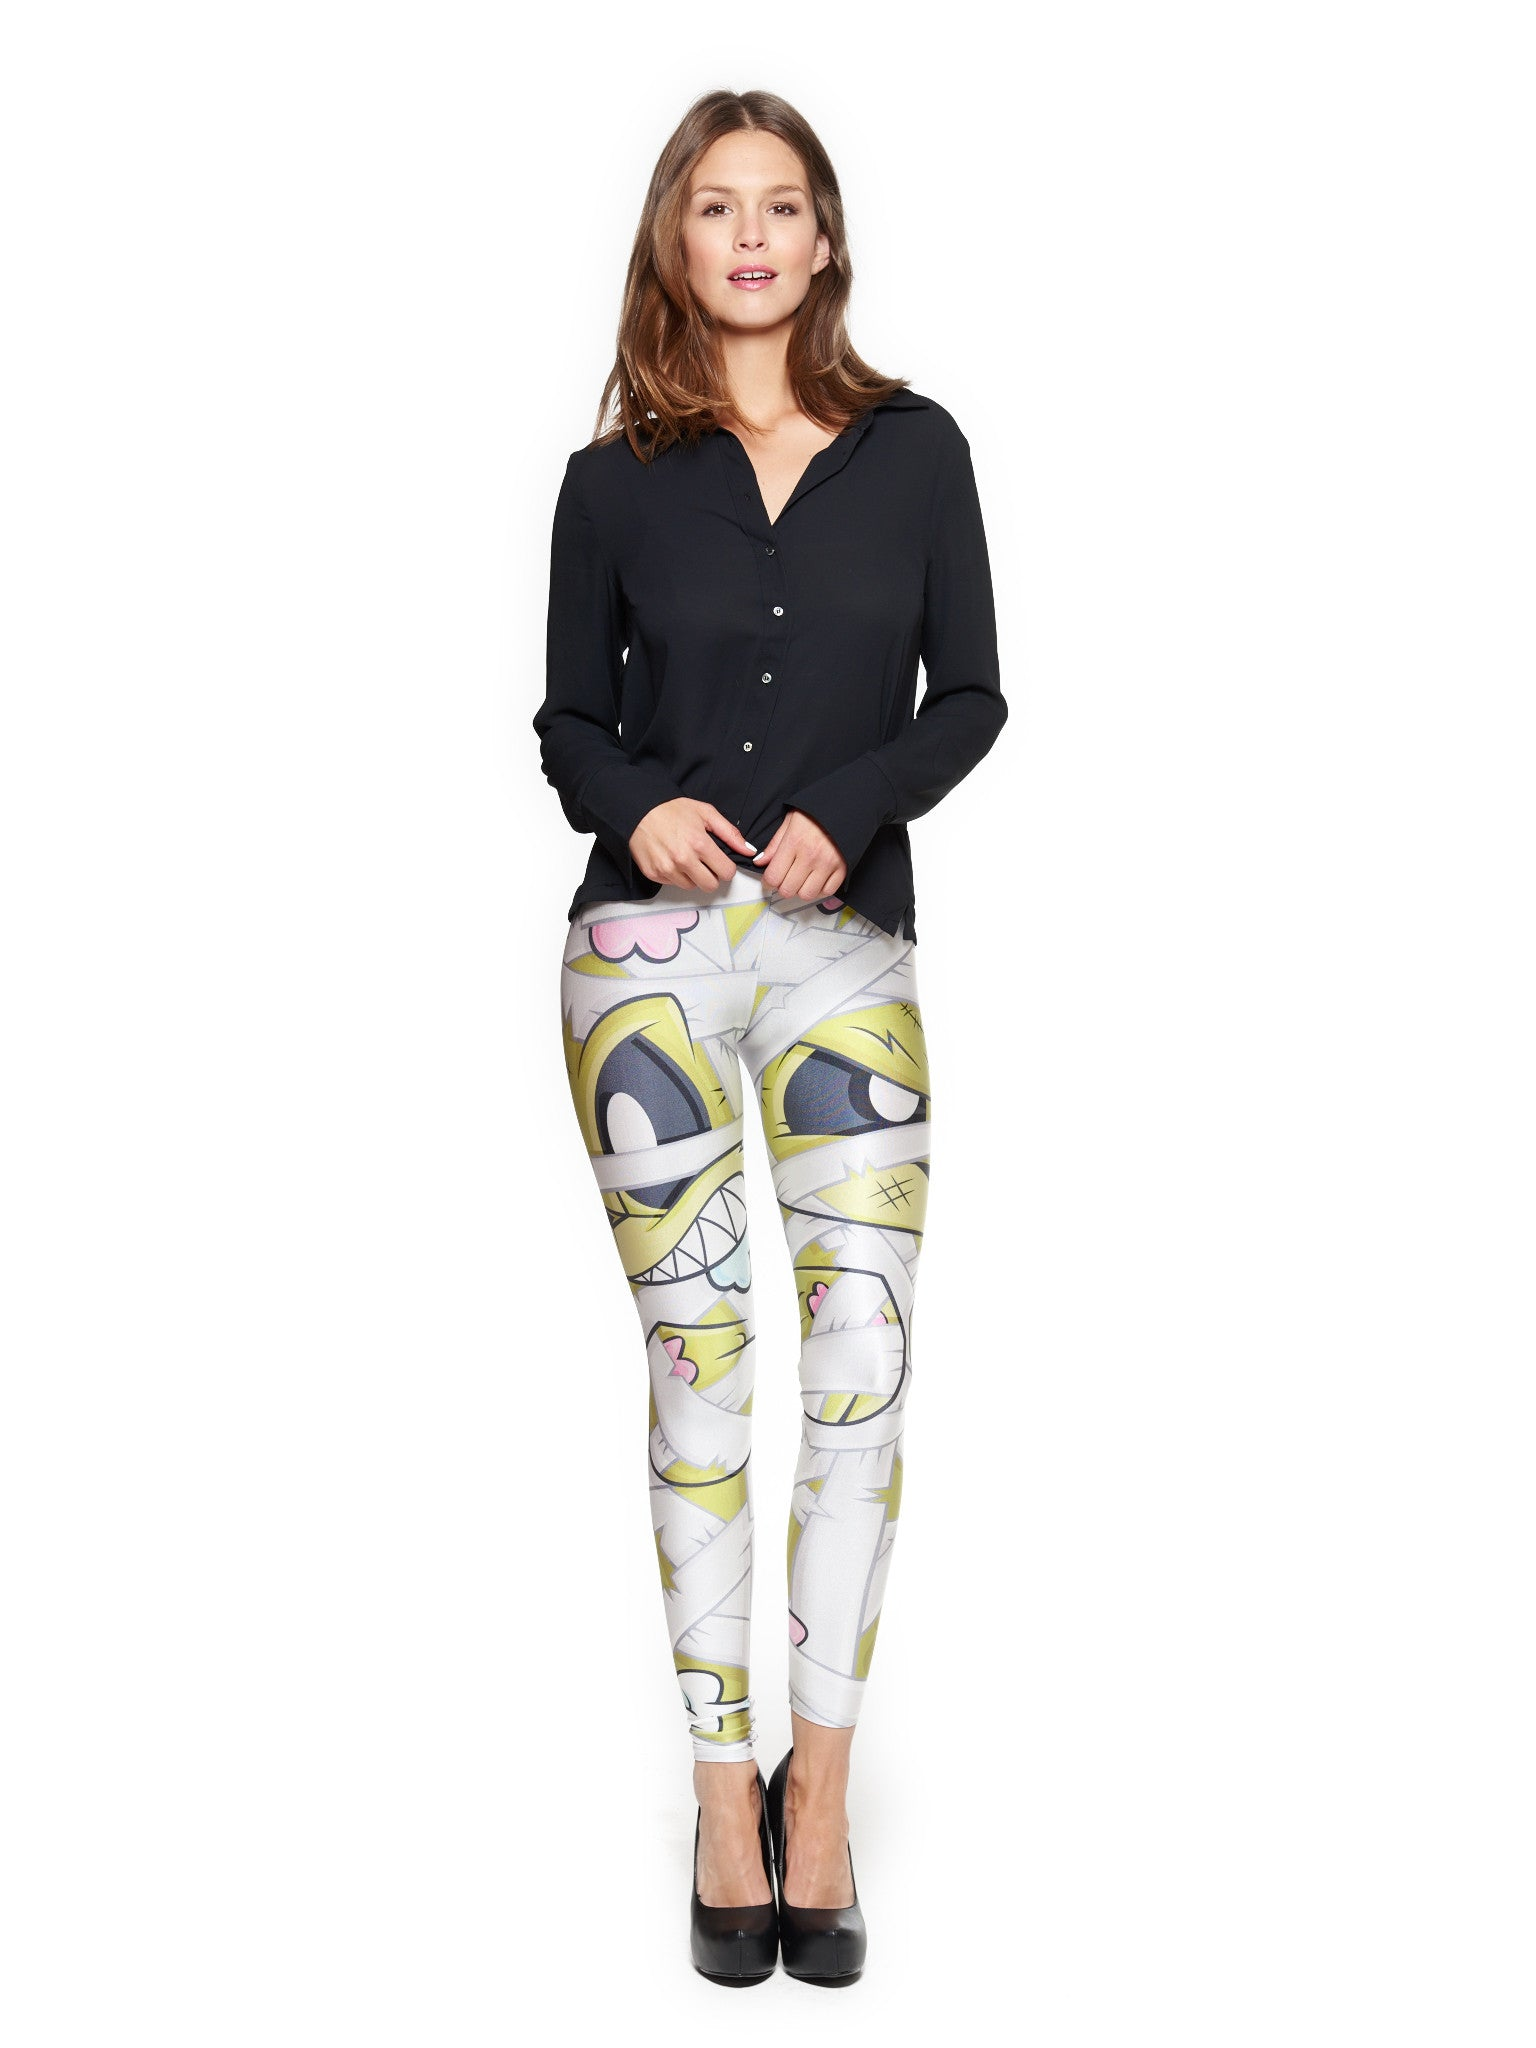 Mummy Bunny Queen West Leggings - Nuvango  - 1